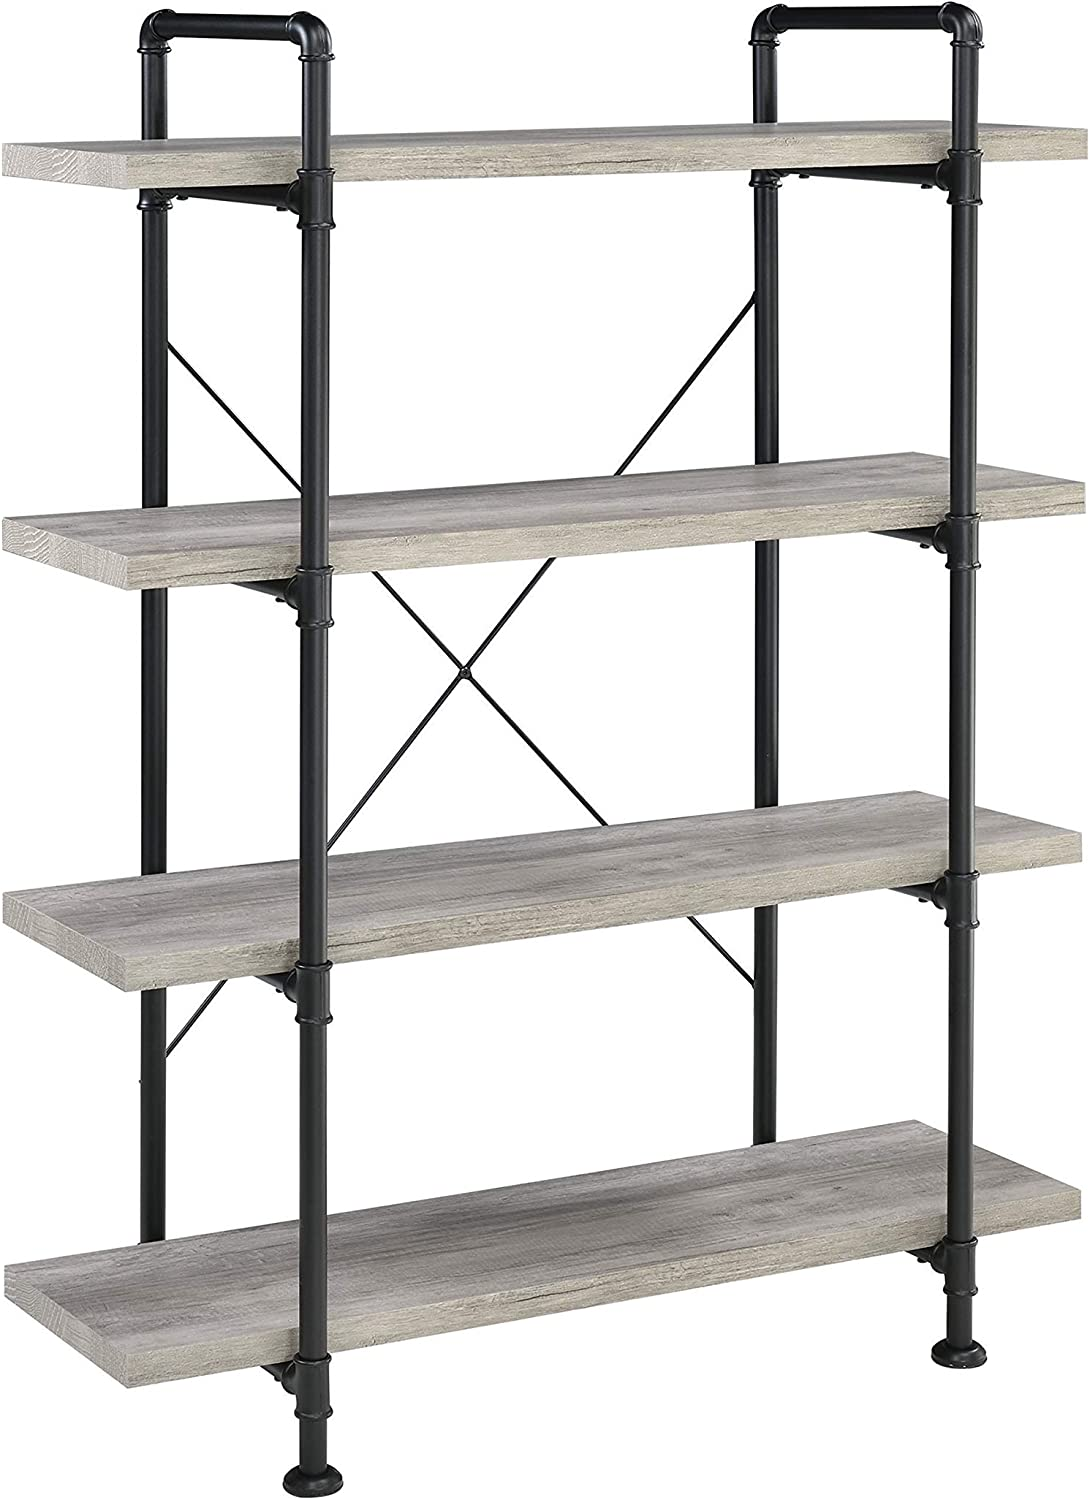 Coaster Home Furnishings Delray 4-Tier Bookcase Grey Driftwood and Black Open Shelves